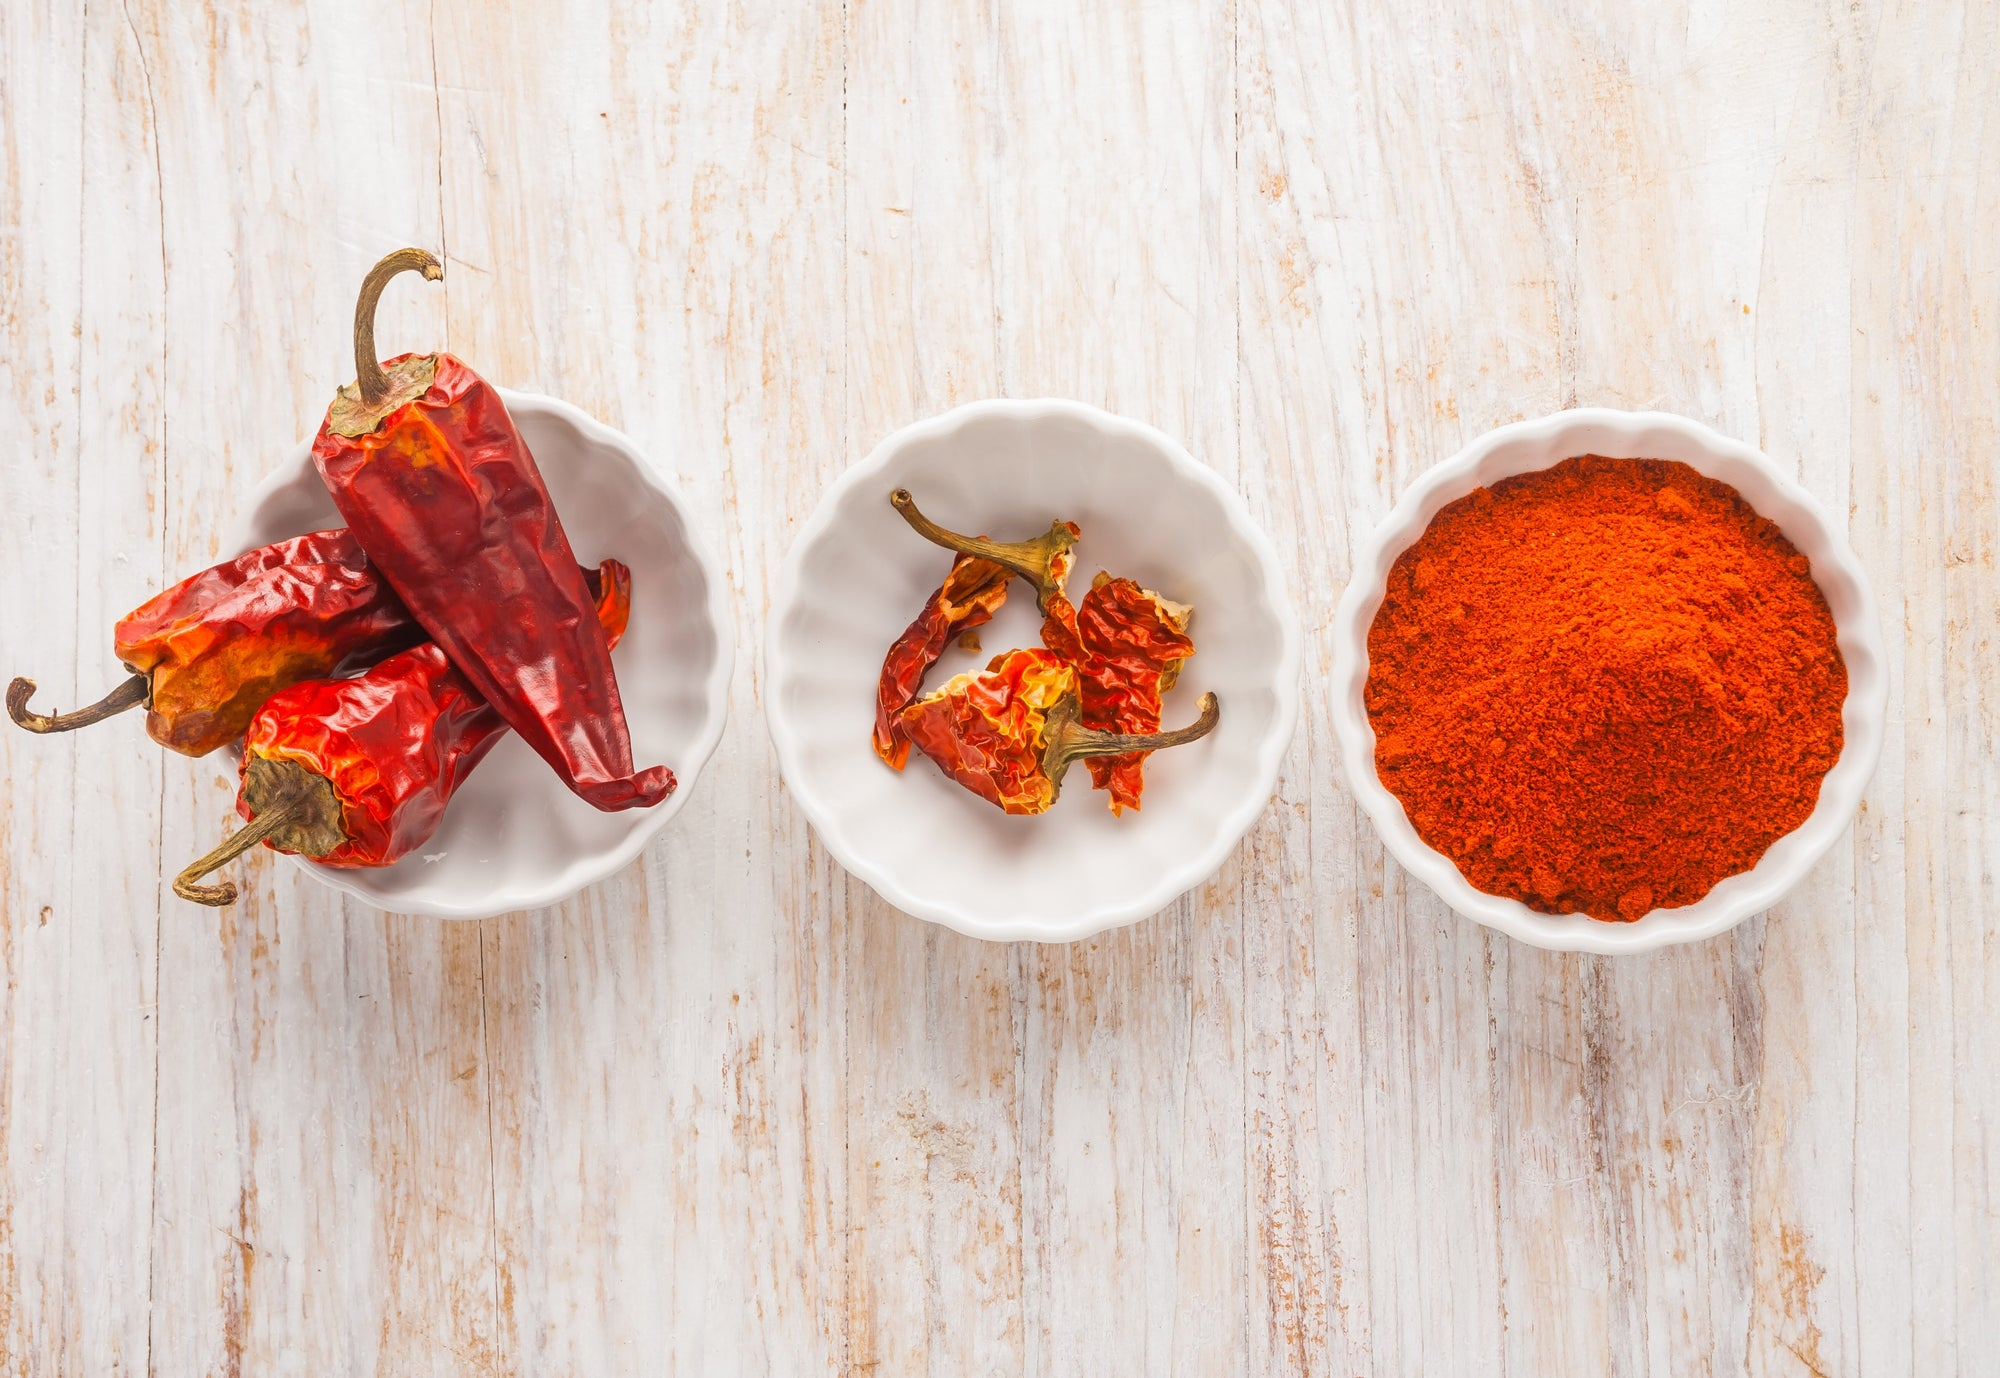 Spicy Foods Lower Disease Risk